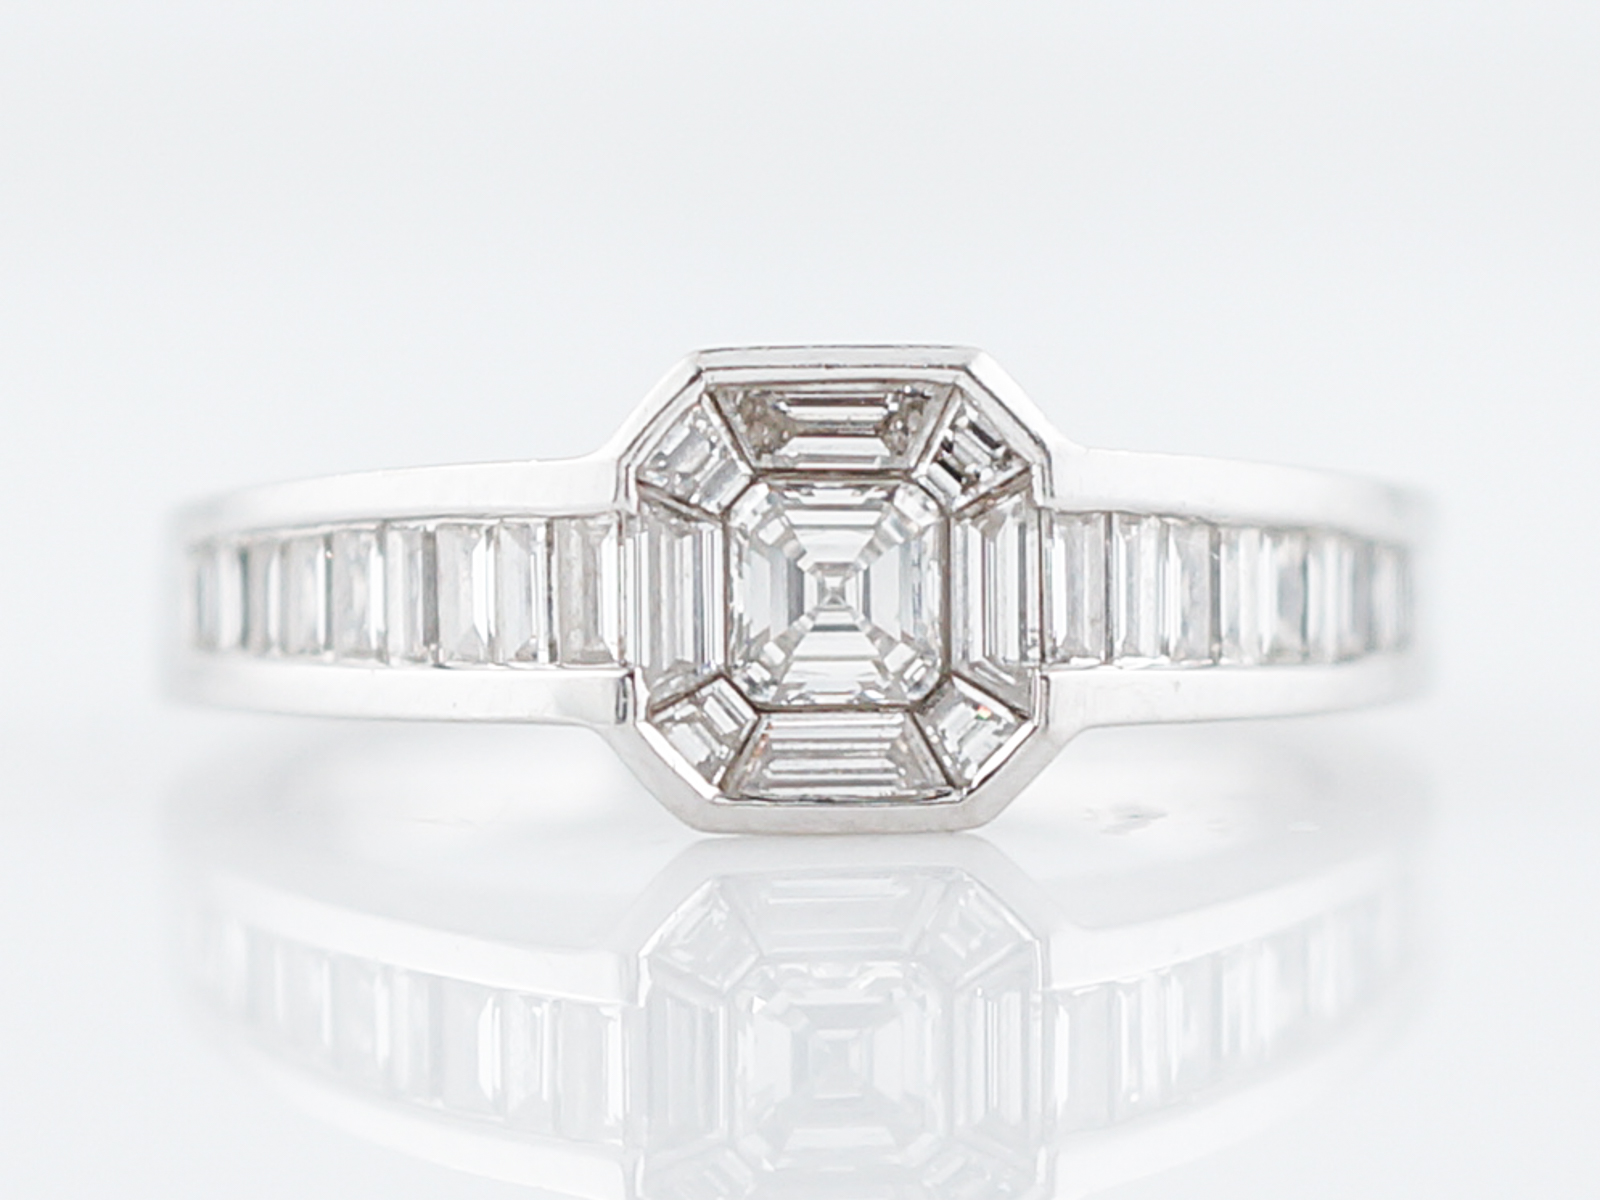 jewelry engagement halo style kwiat platinum ring in cut asscher rings set modern plat diamond